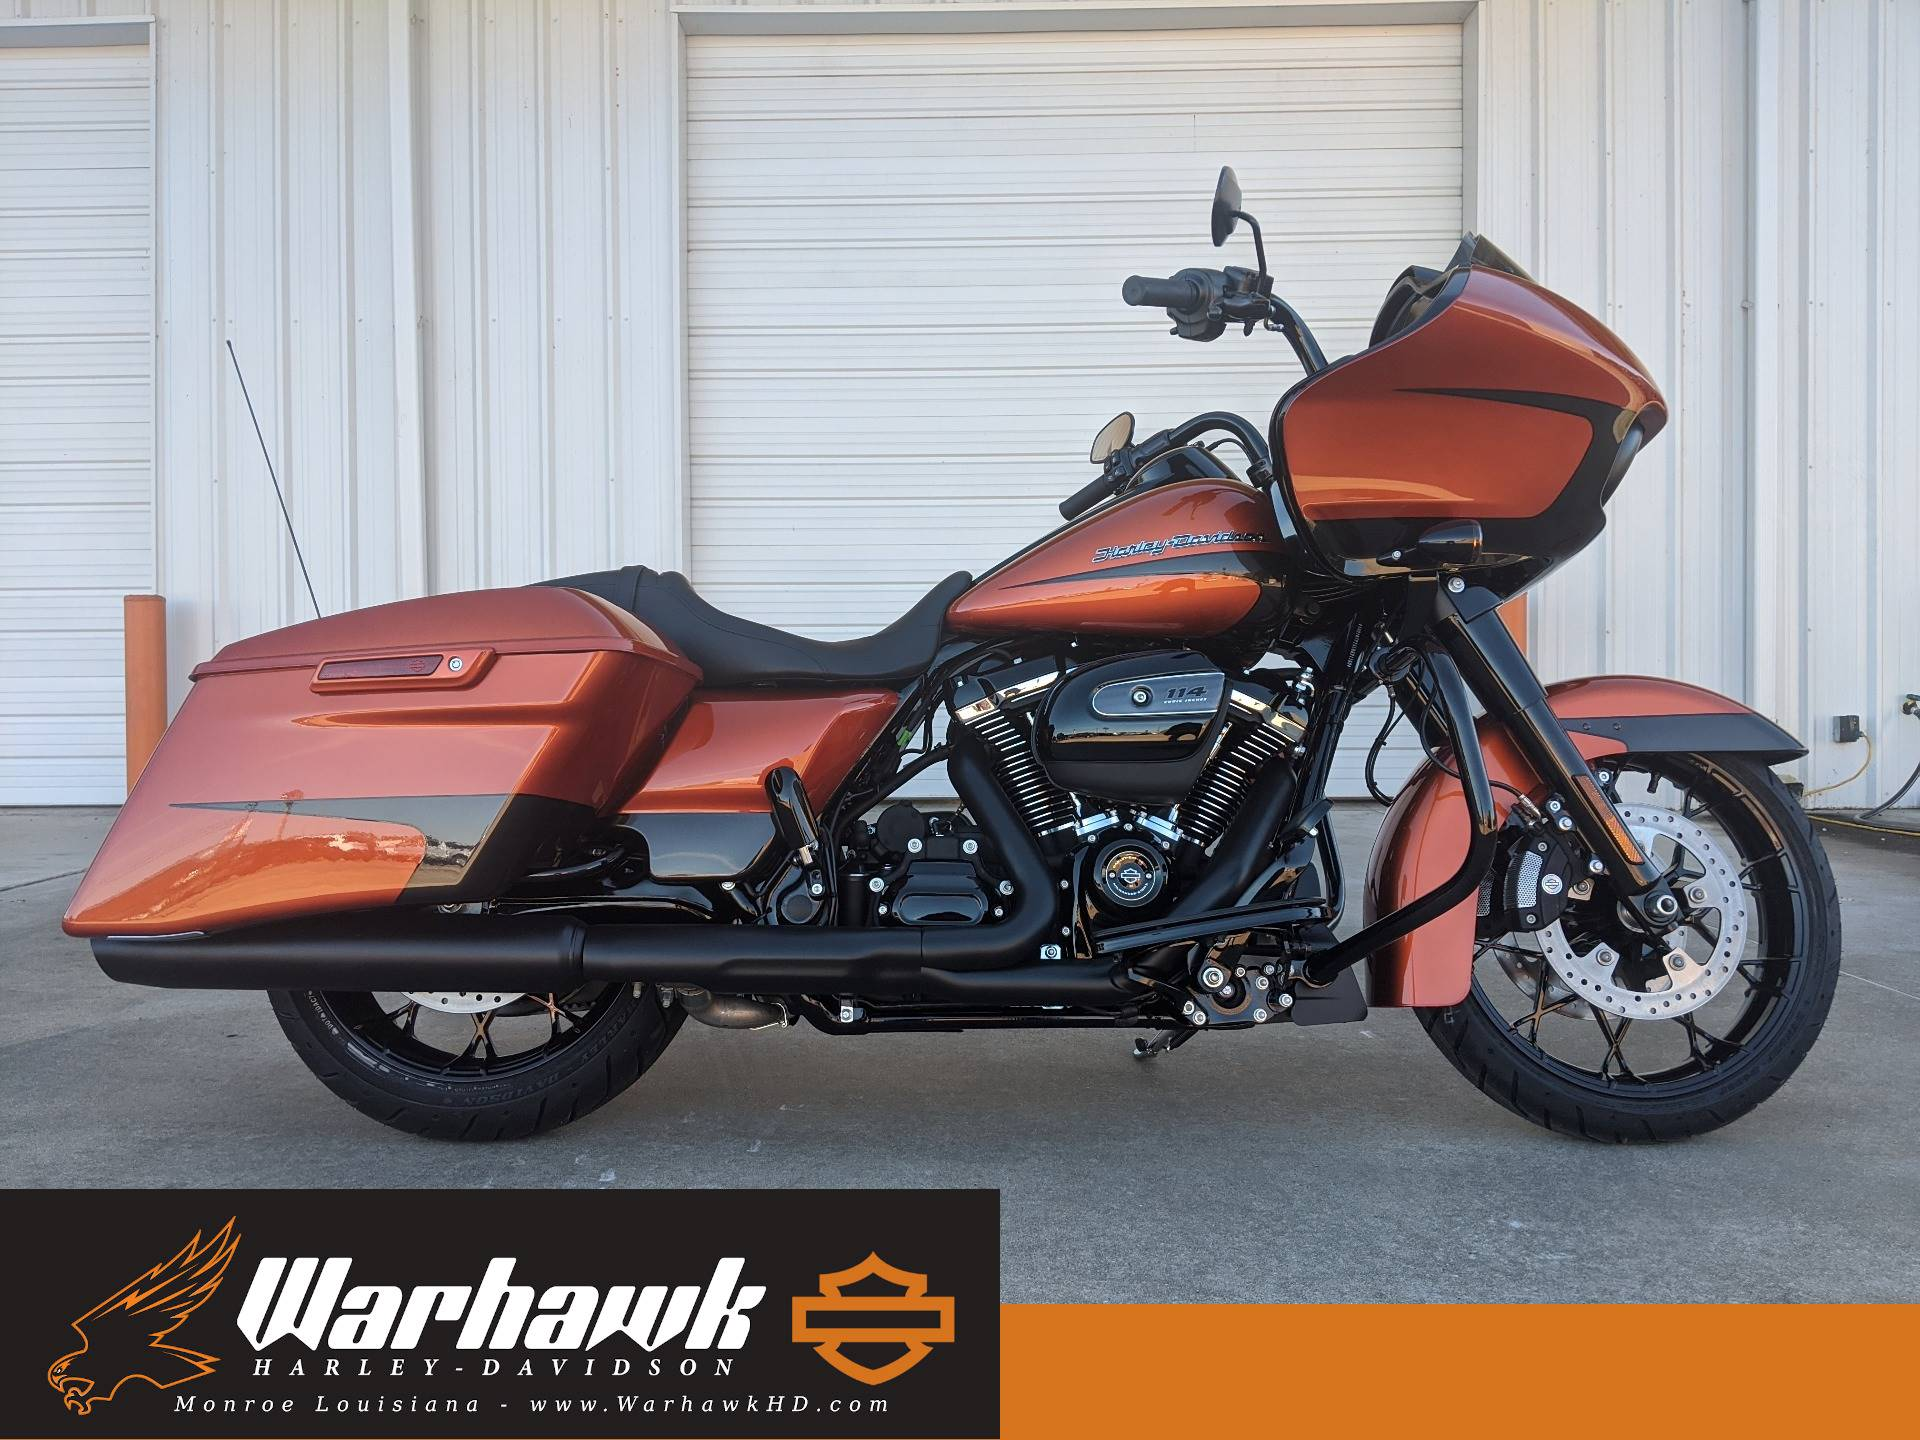 2020 road glide special for sale near me - Photo 1